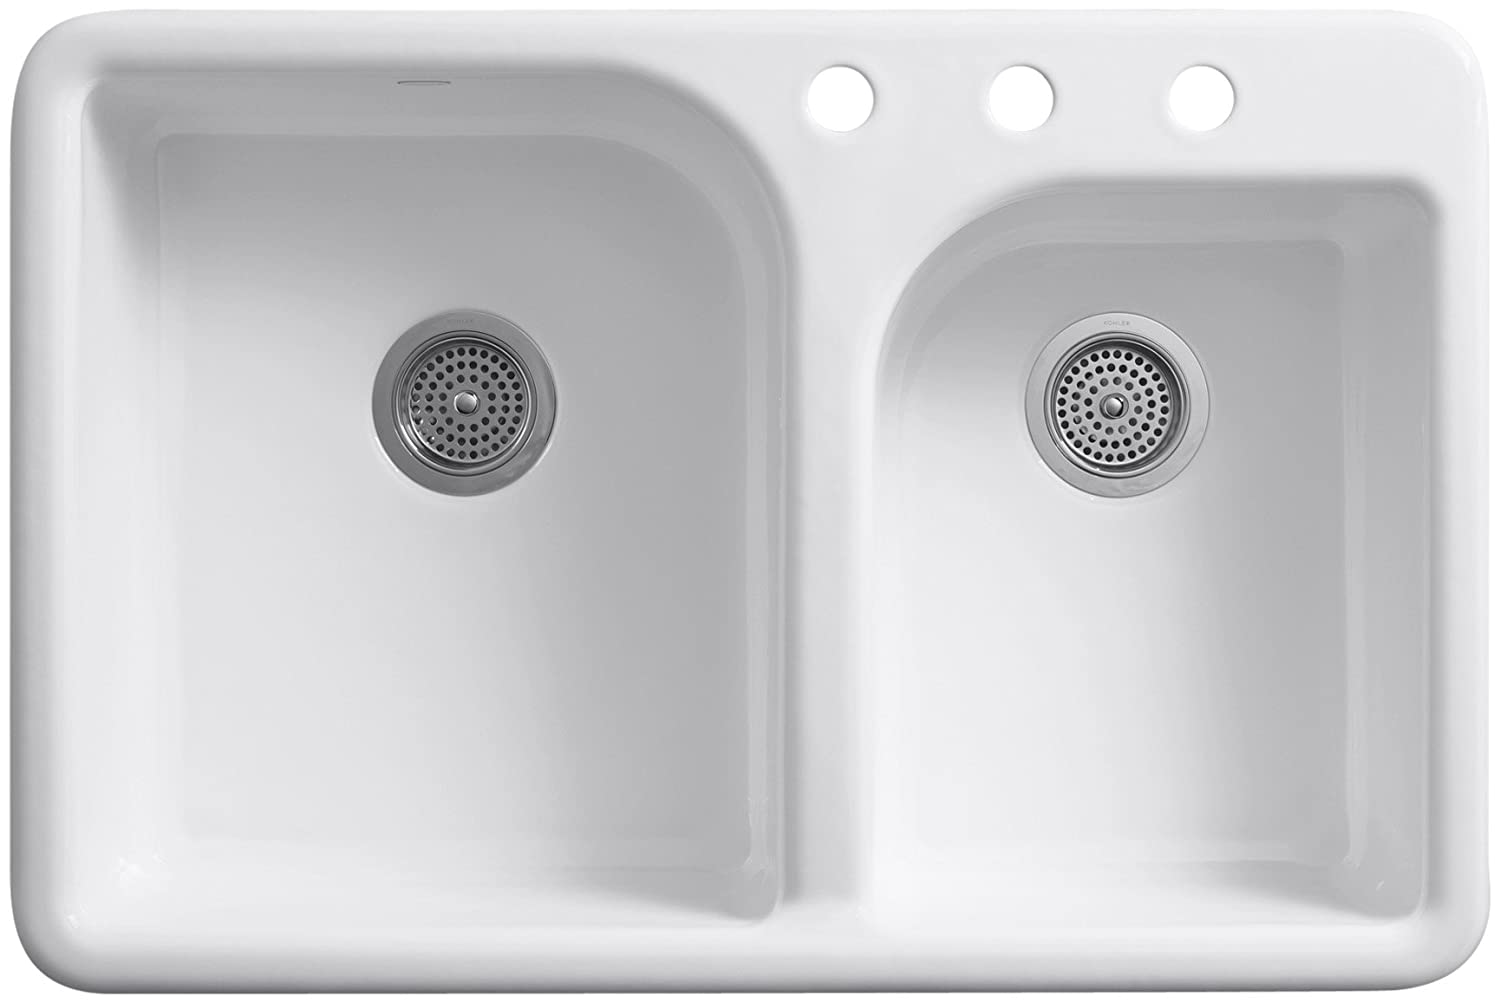 KOHLER K-5948-3-0 Efficiency Self-Rimming Kitchen Sink, White